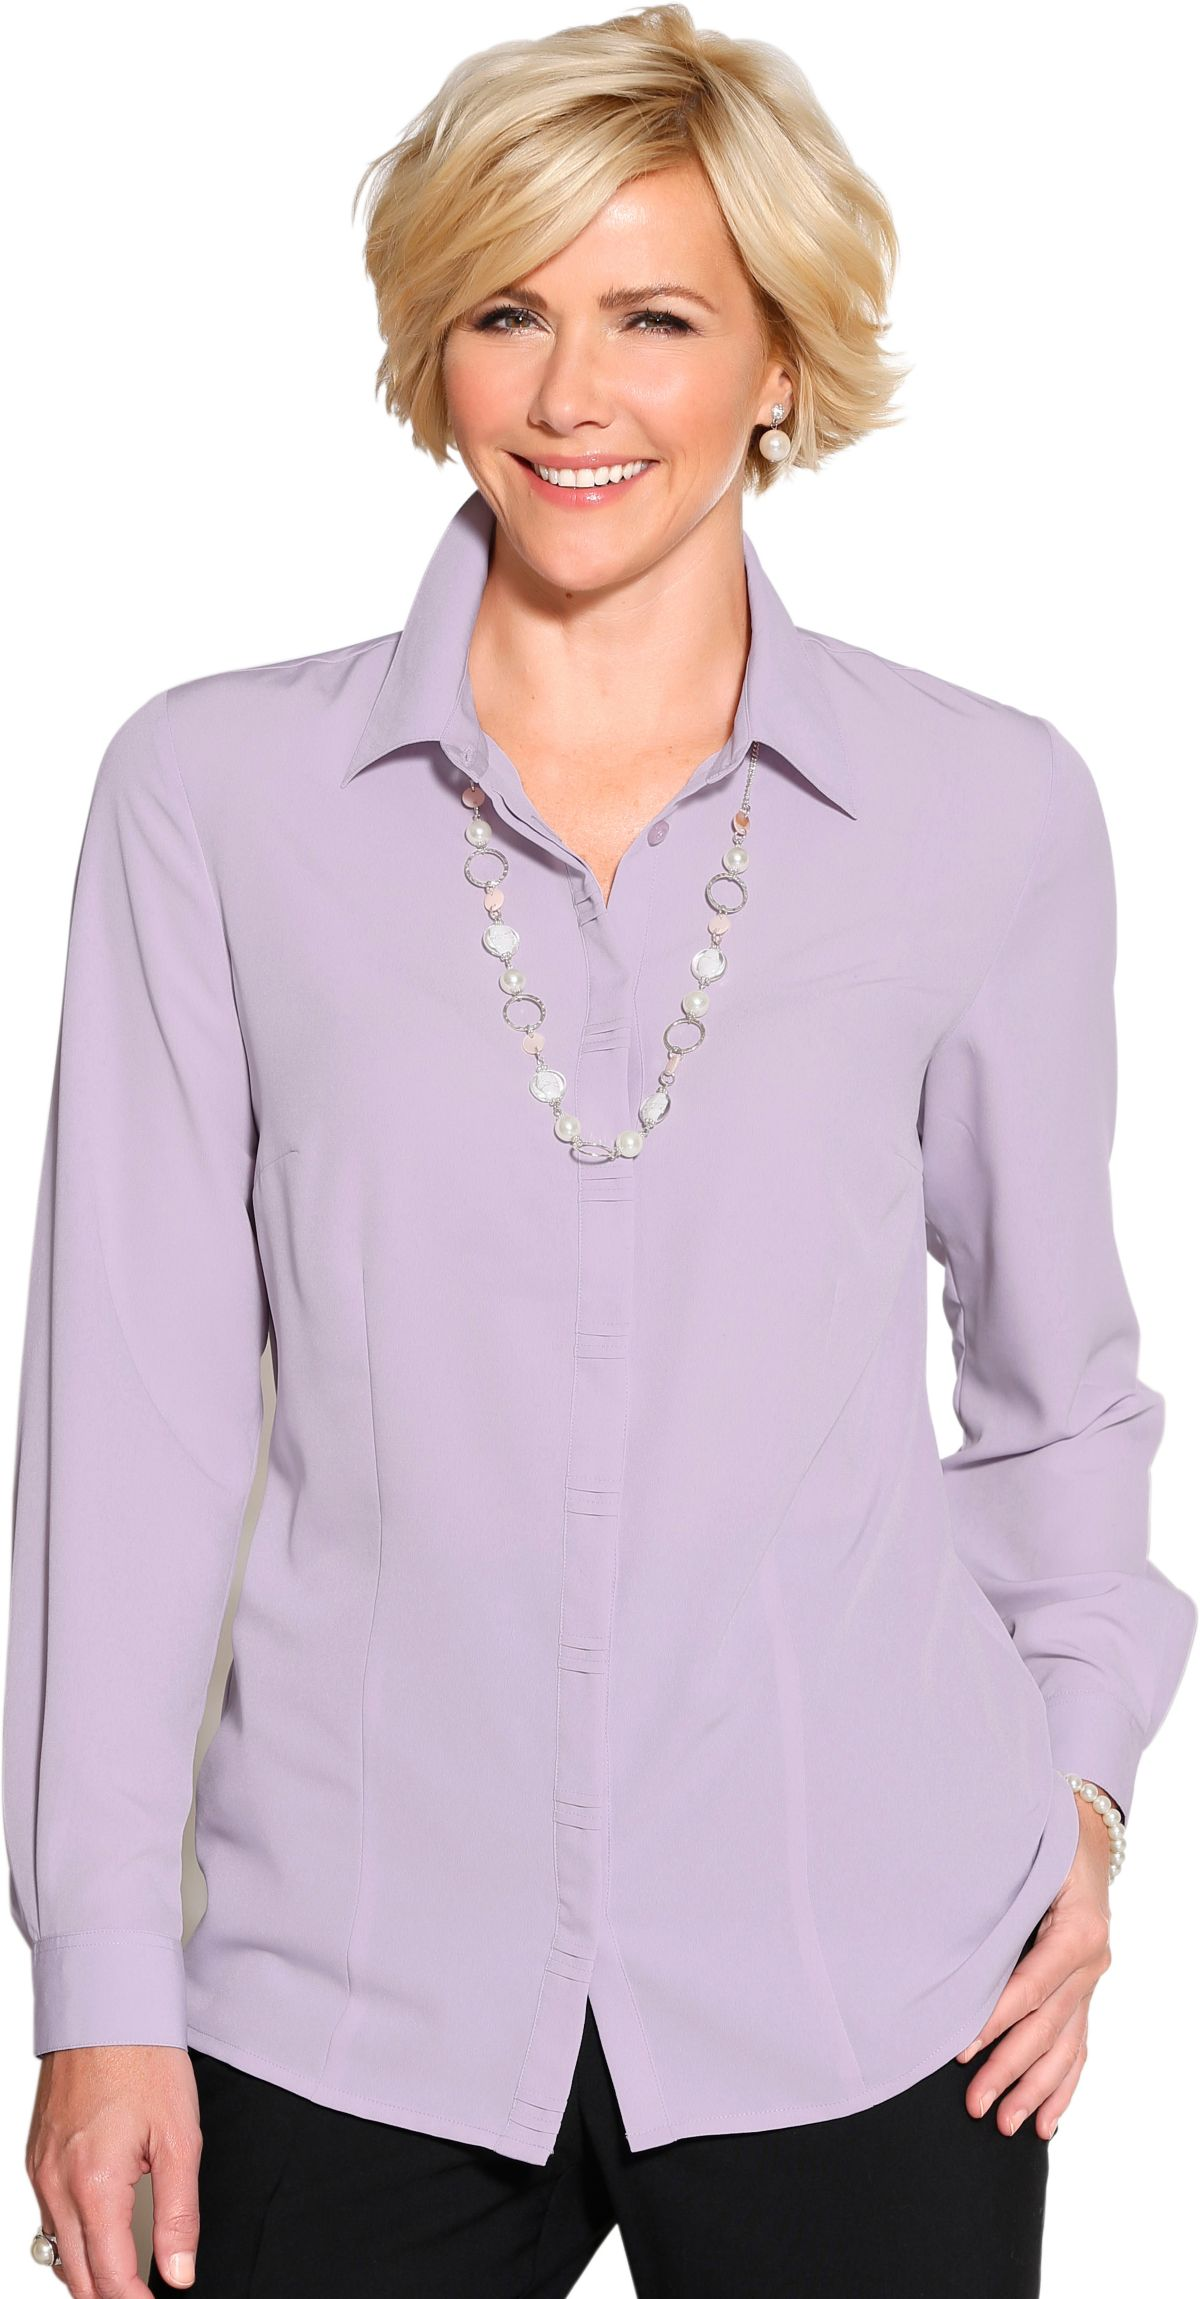 Classic Bluse mit Schulterpolster